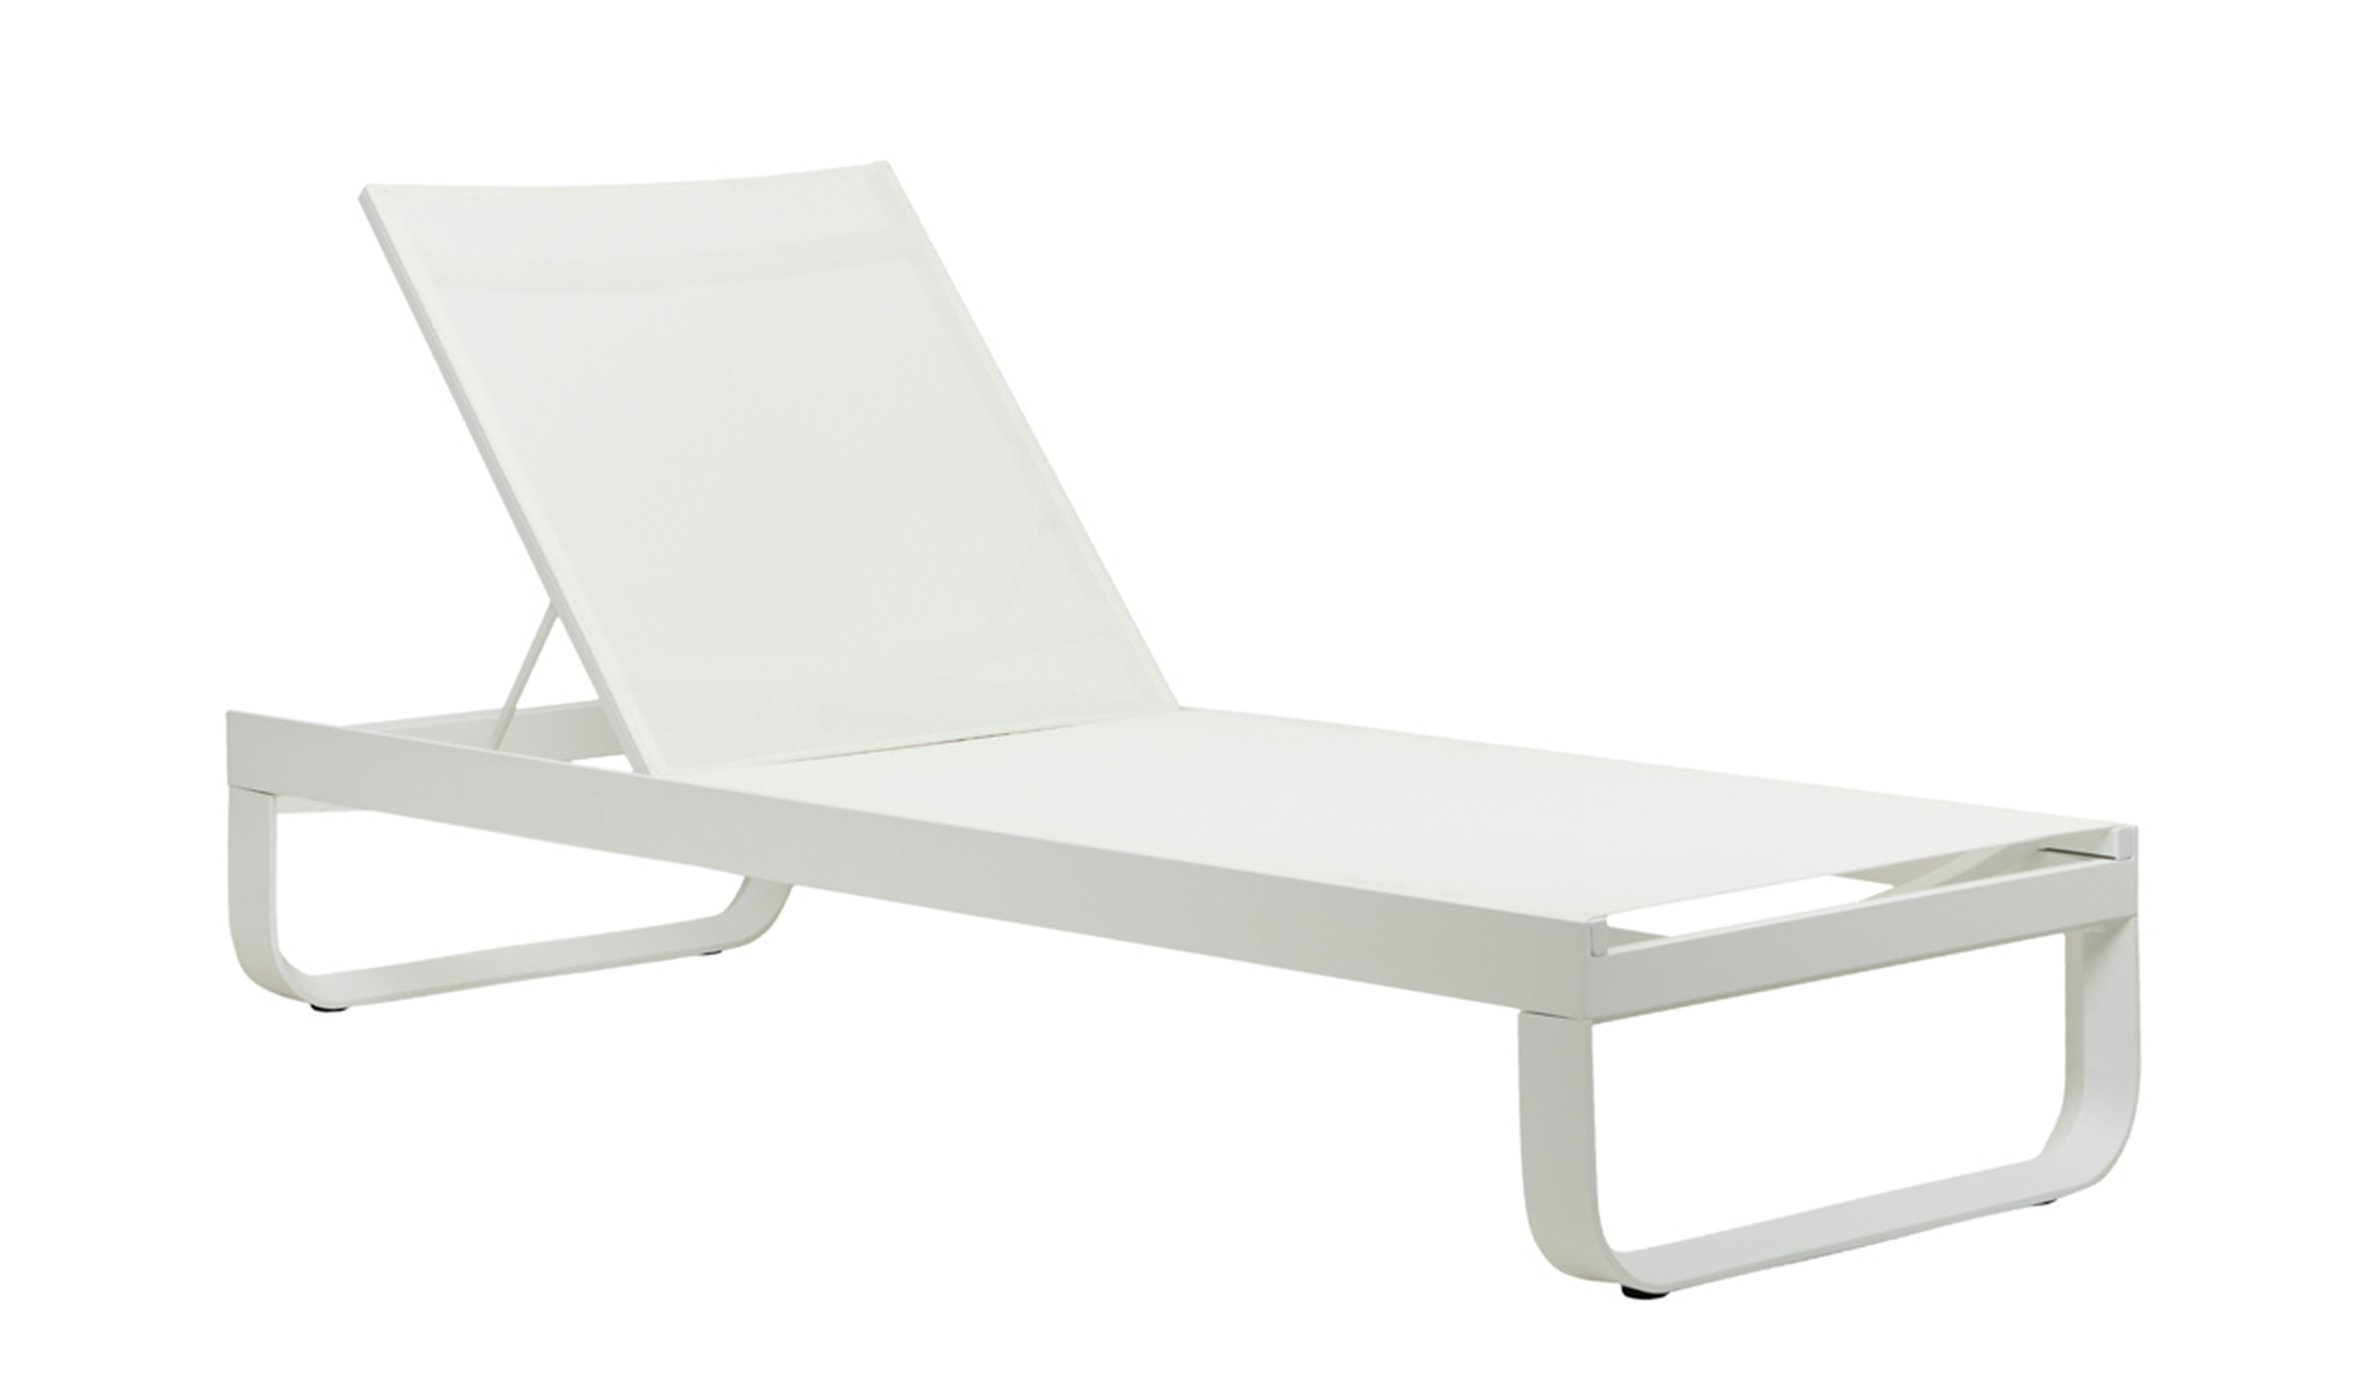 Furniture Thumbnails Sunbeds outdoor-sunbeds-and-daybeds-pier-curve-200